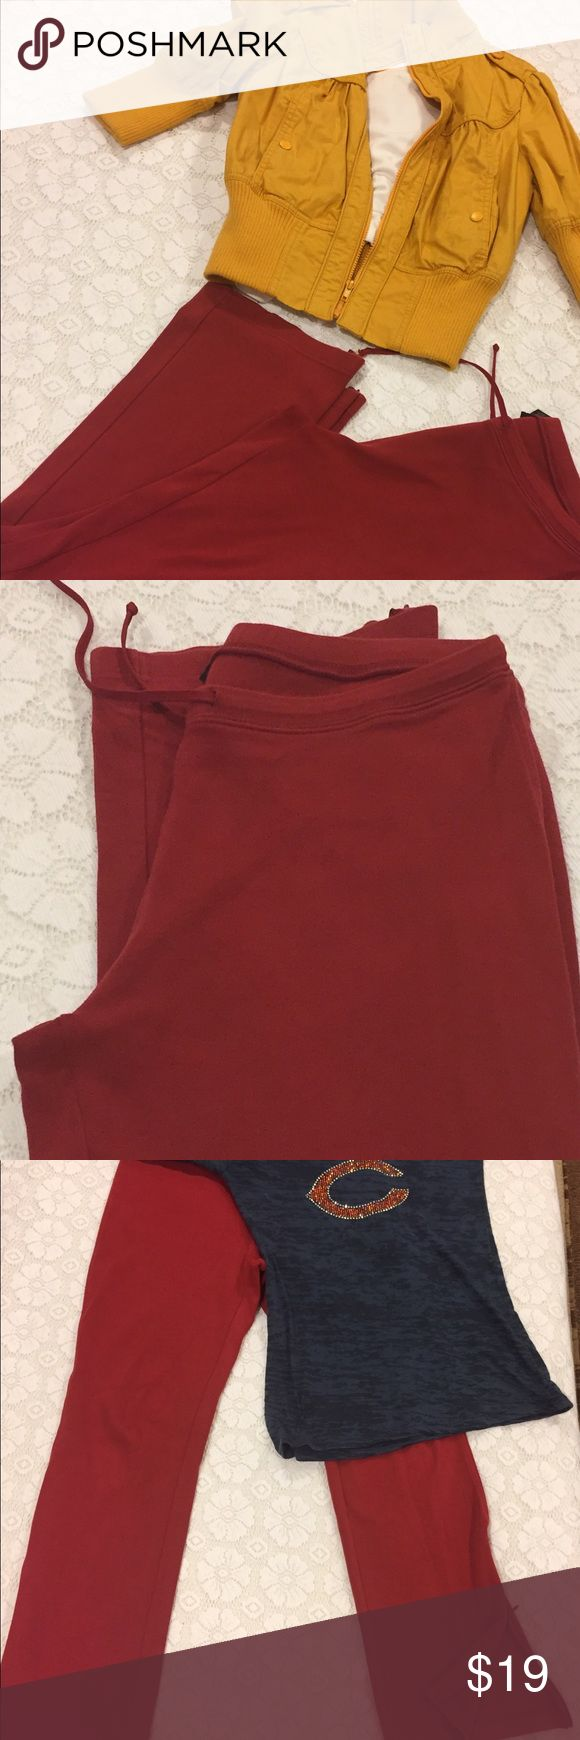 Limited Red Joggers Beautiful Athletic Pants in Brick Red.  Dress up these pants or dress down or simply work out in them they are so comfortable. Zipper Bottoms.  By The Limited. The Limited Pants Track Pants & Joggers